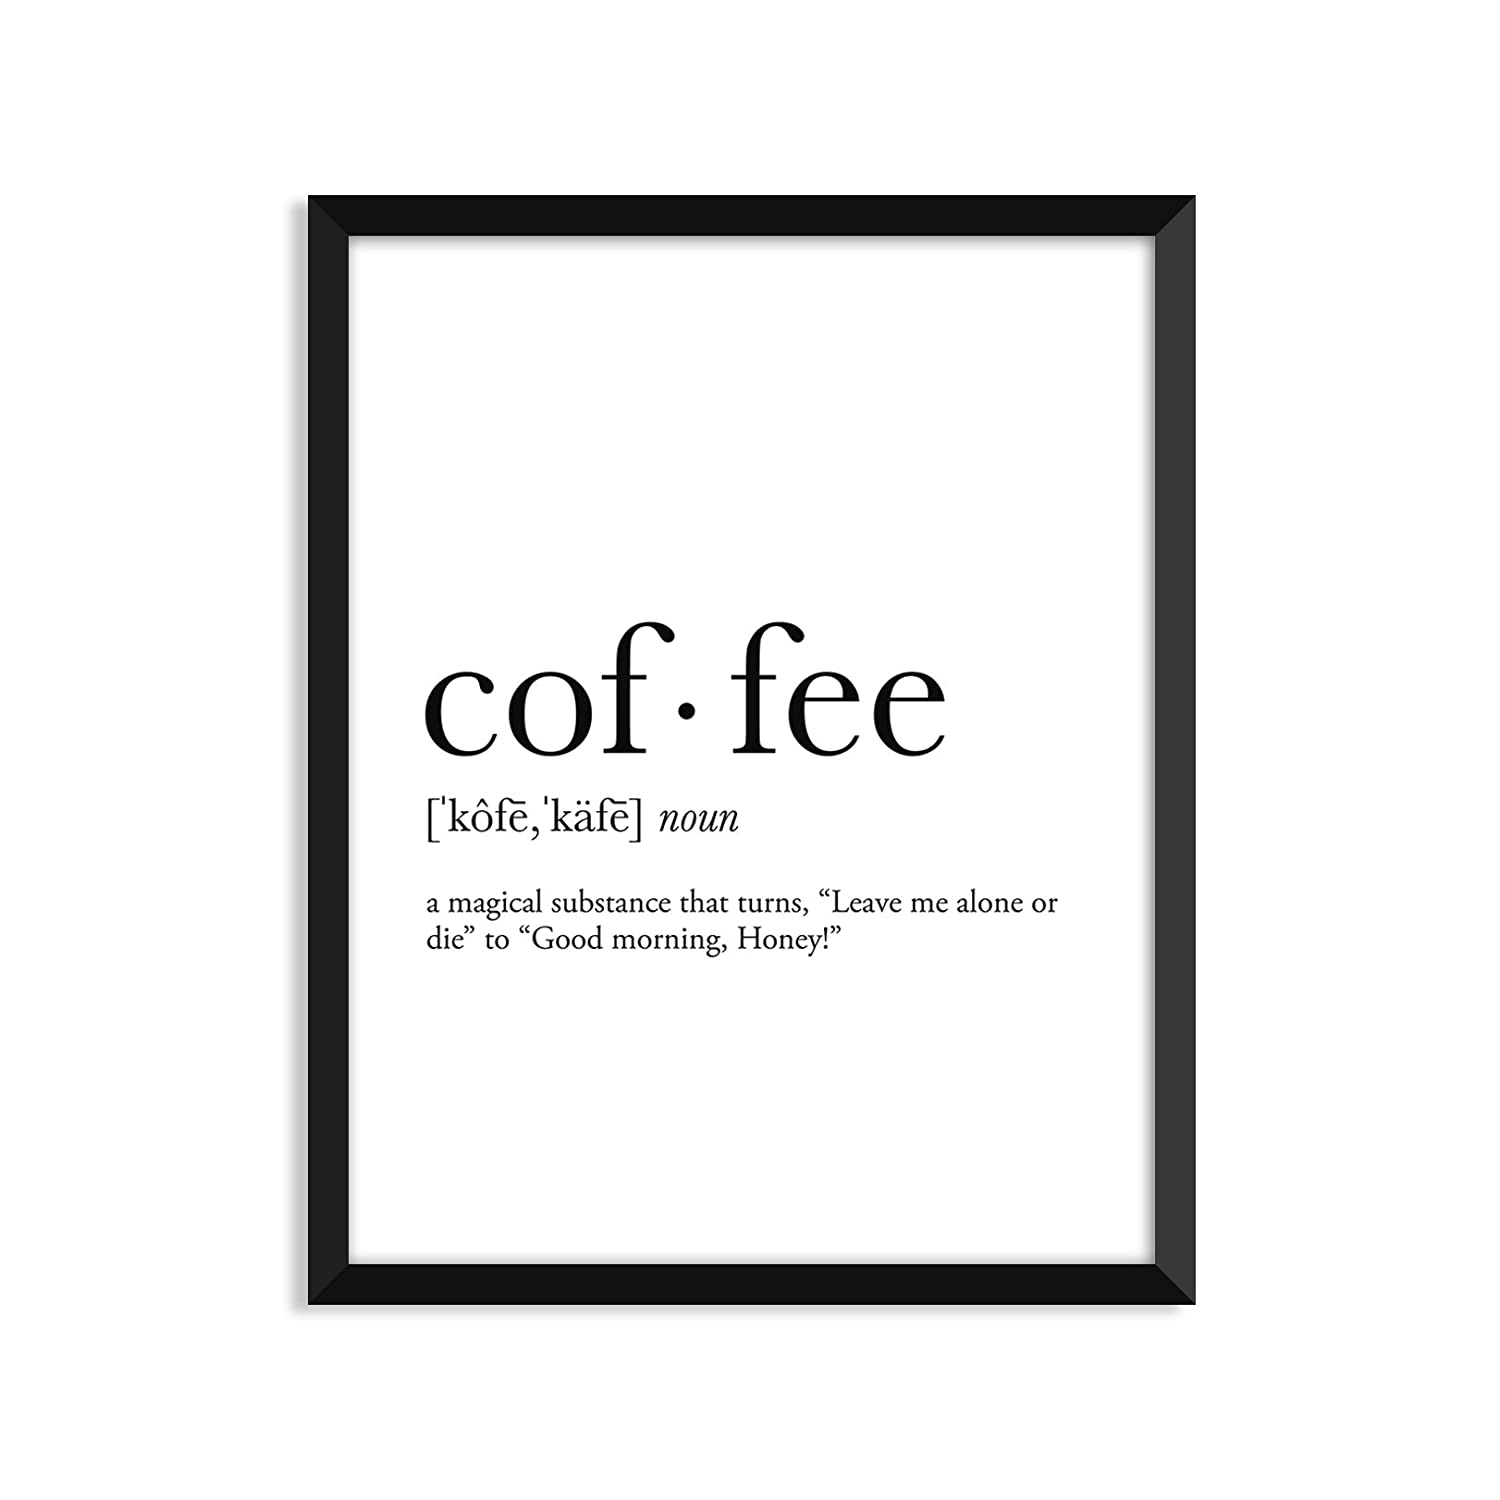 Coffee definition - Unframed art print poster or greeting card